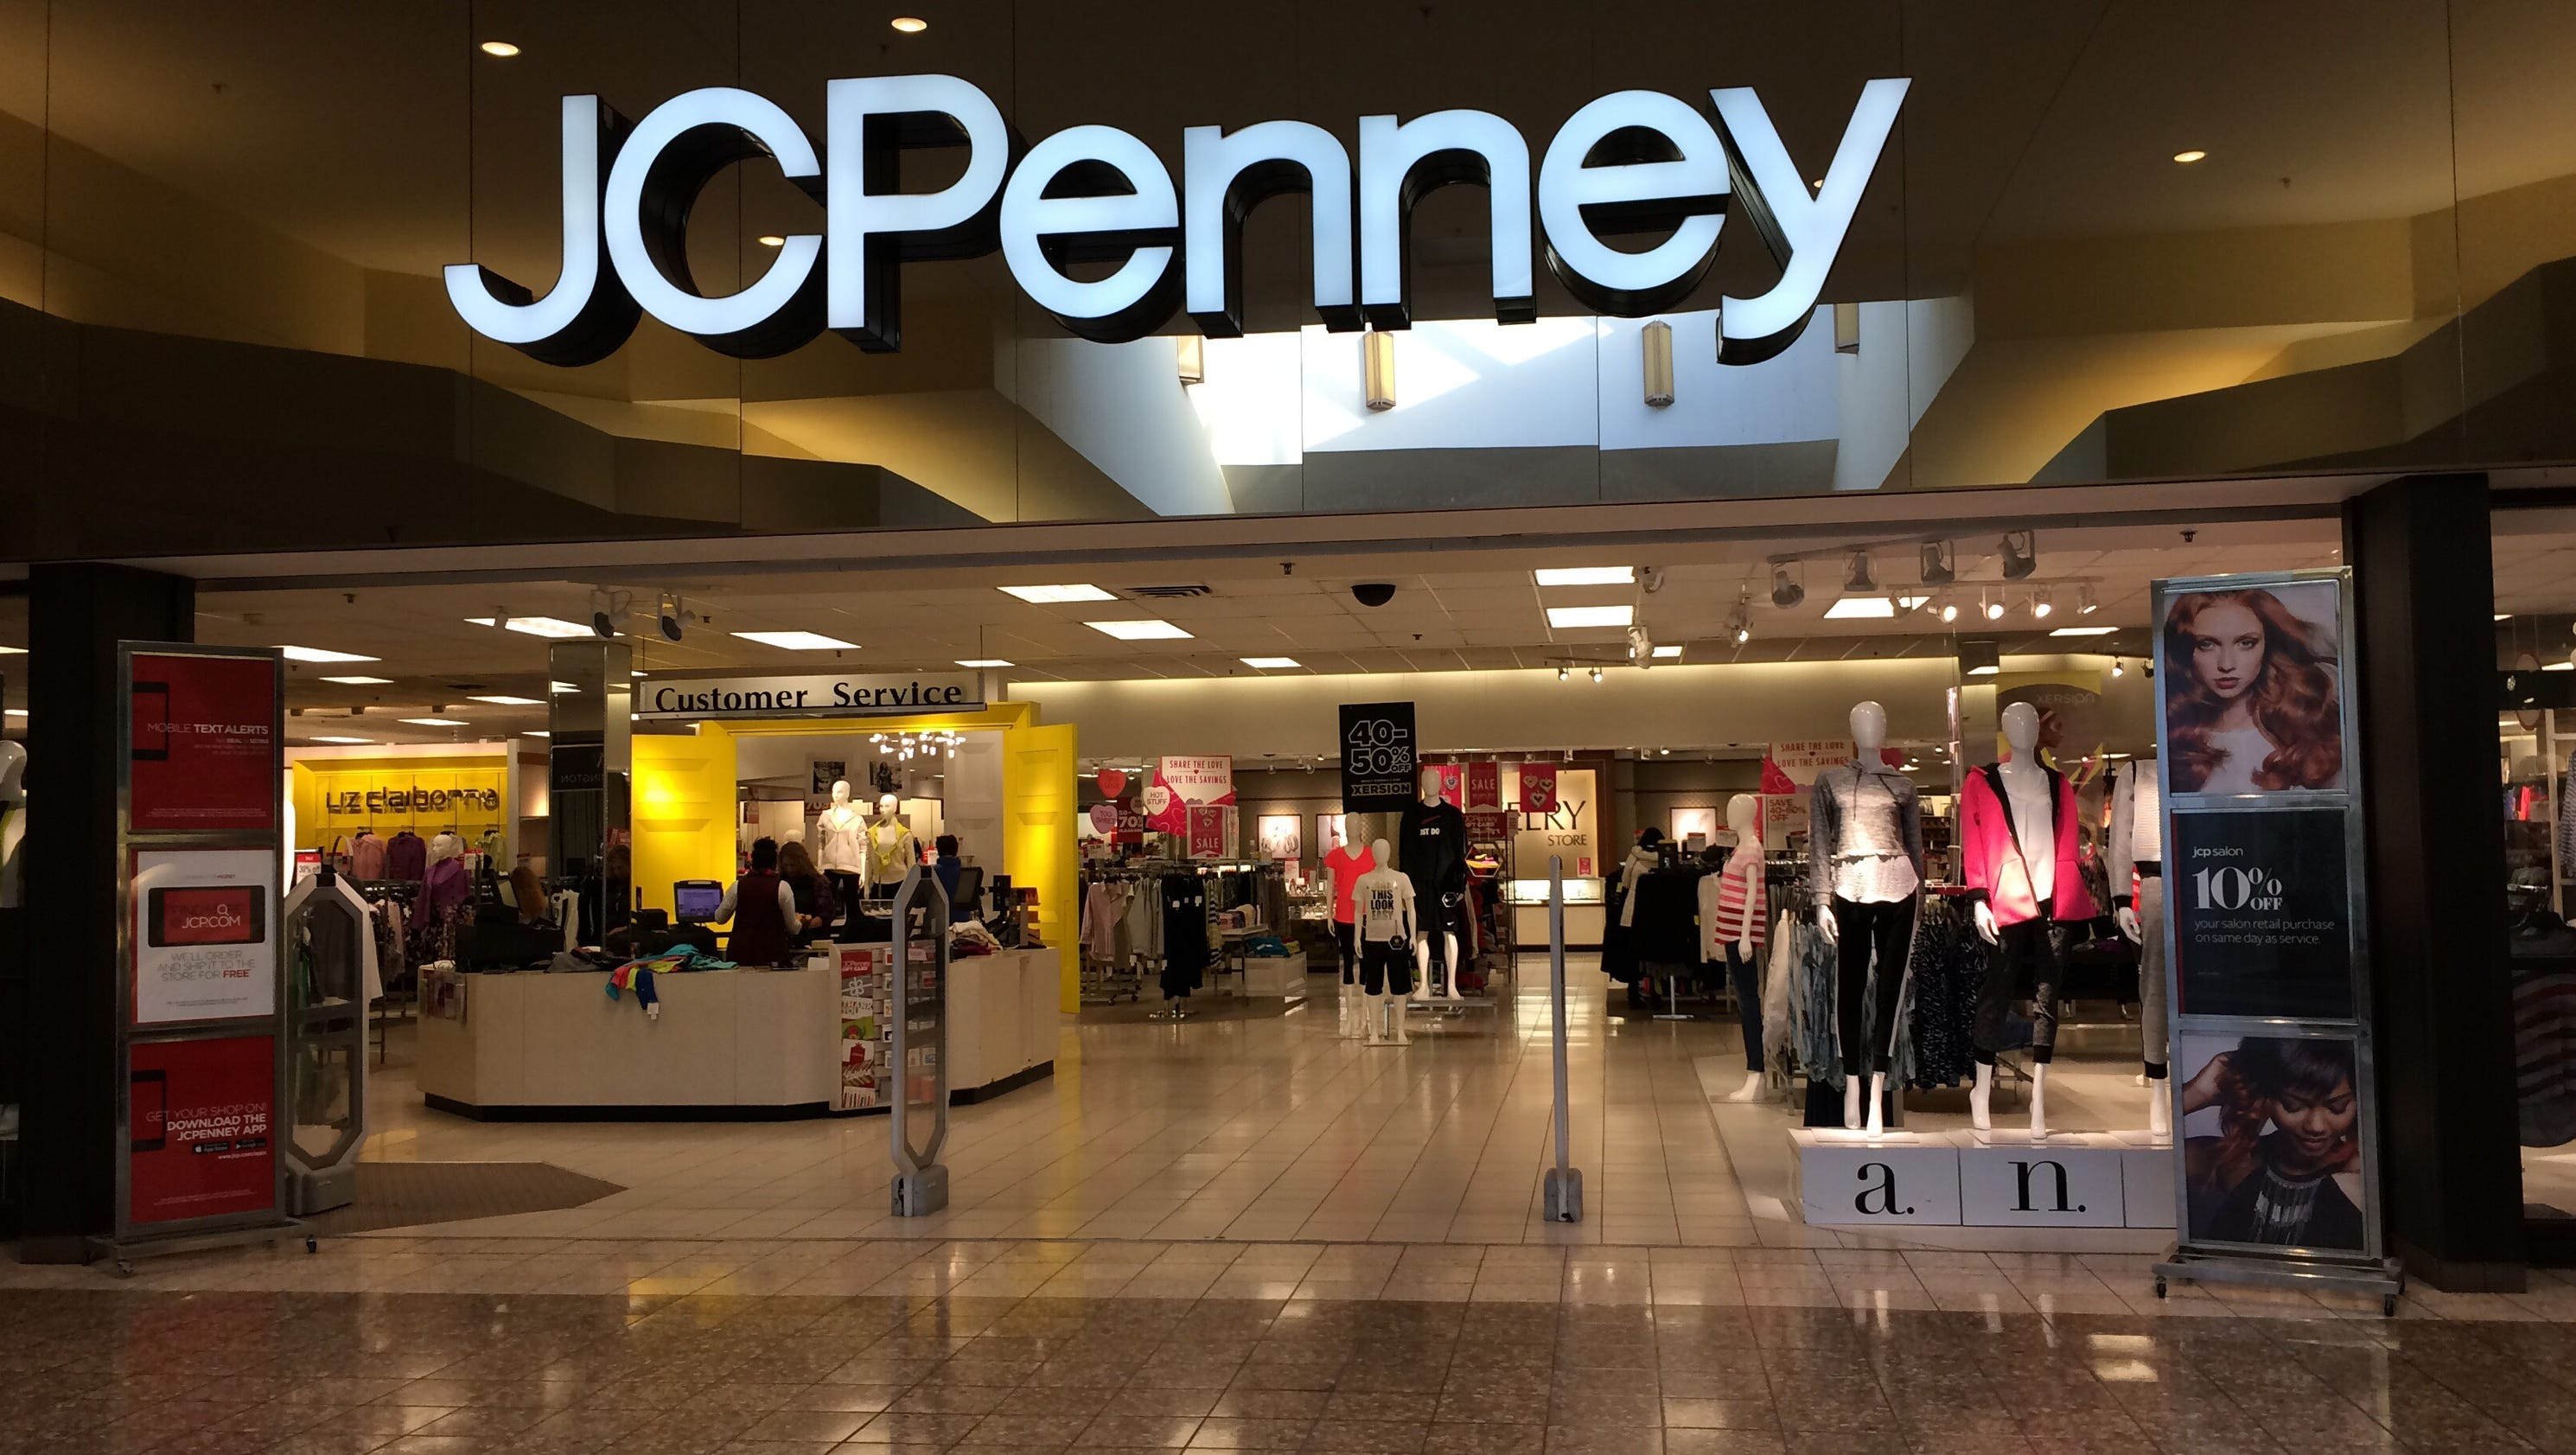 Jcp credit center login -  Disappointing Marshfield J C Penney To Close